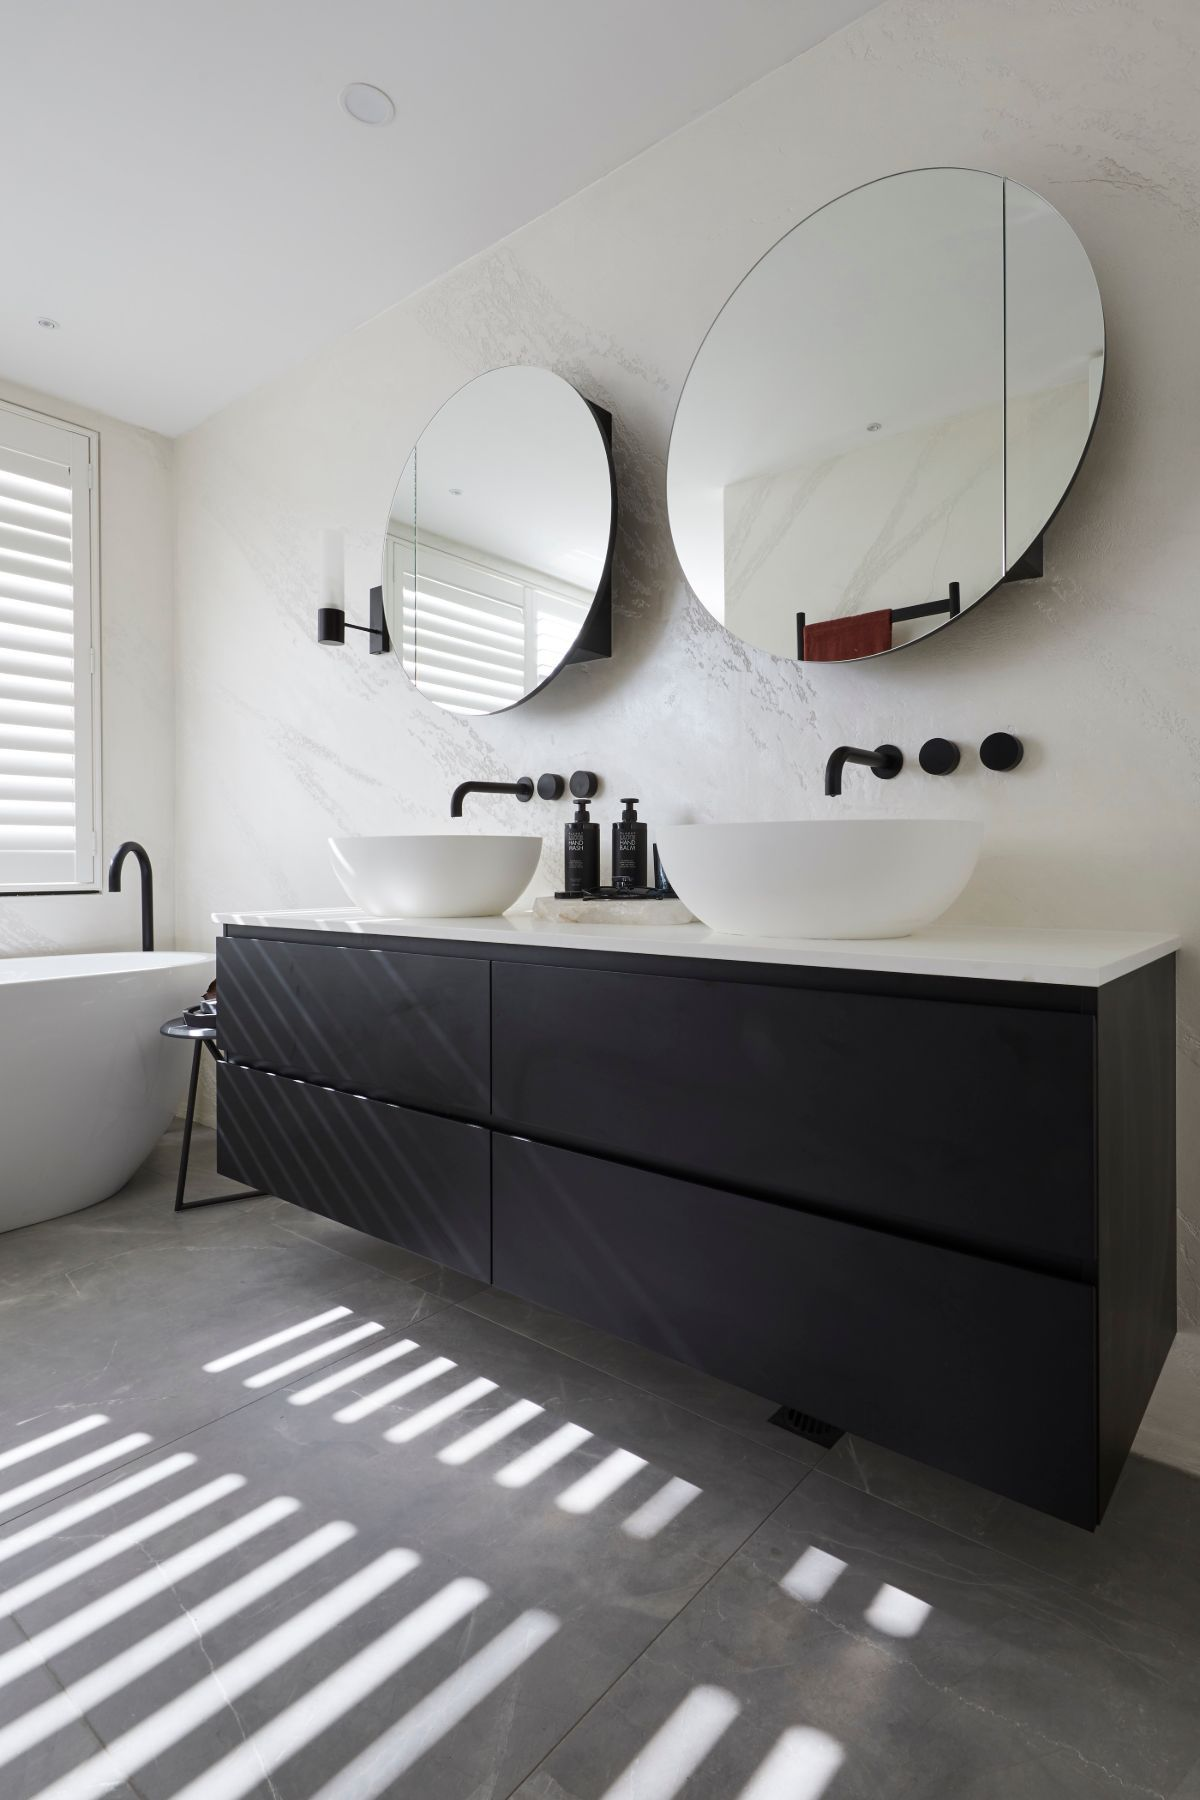 Elise Matt Took Some Risks With Their Master Ensuite The Judges